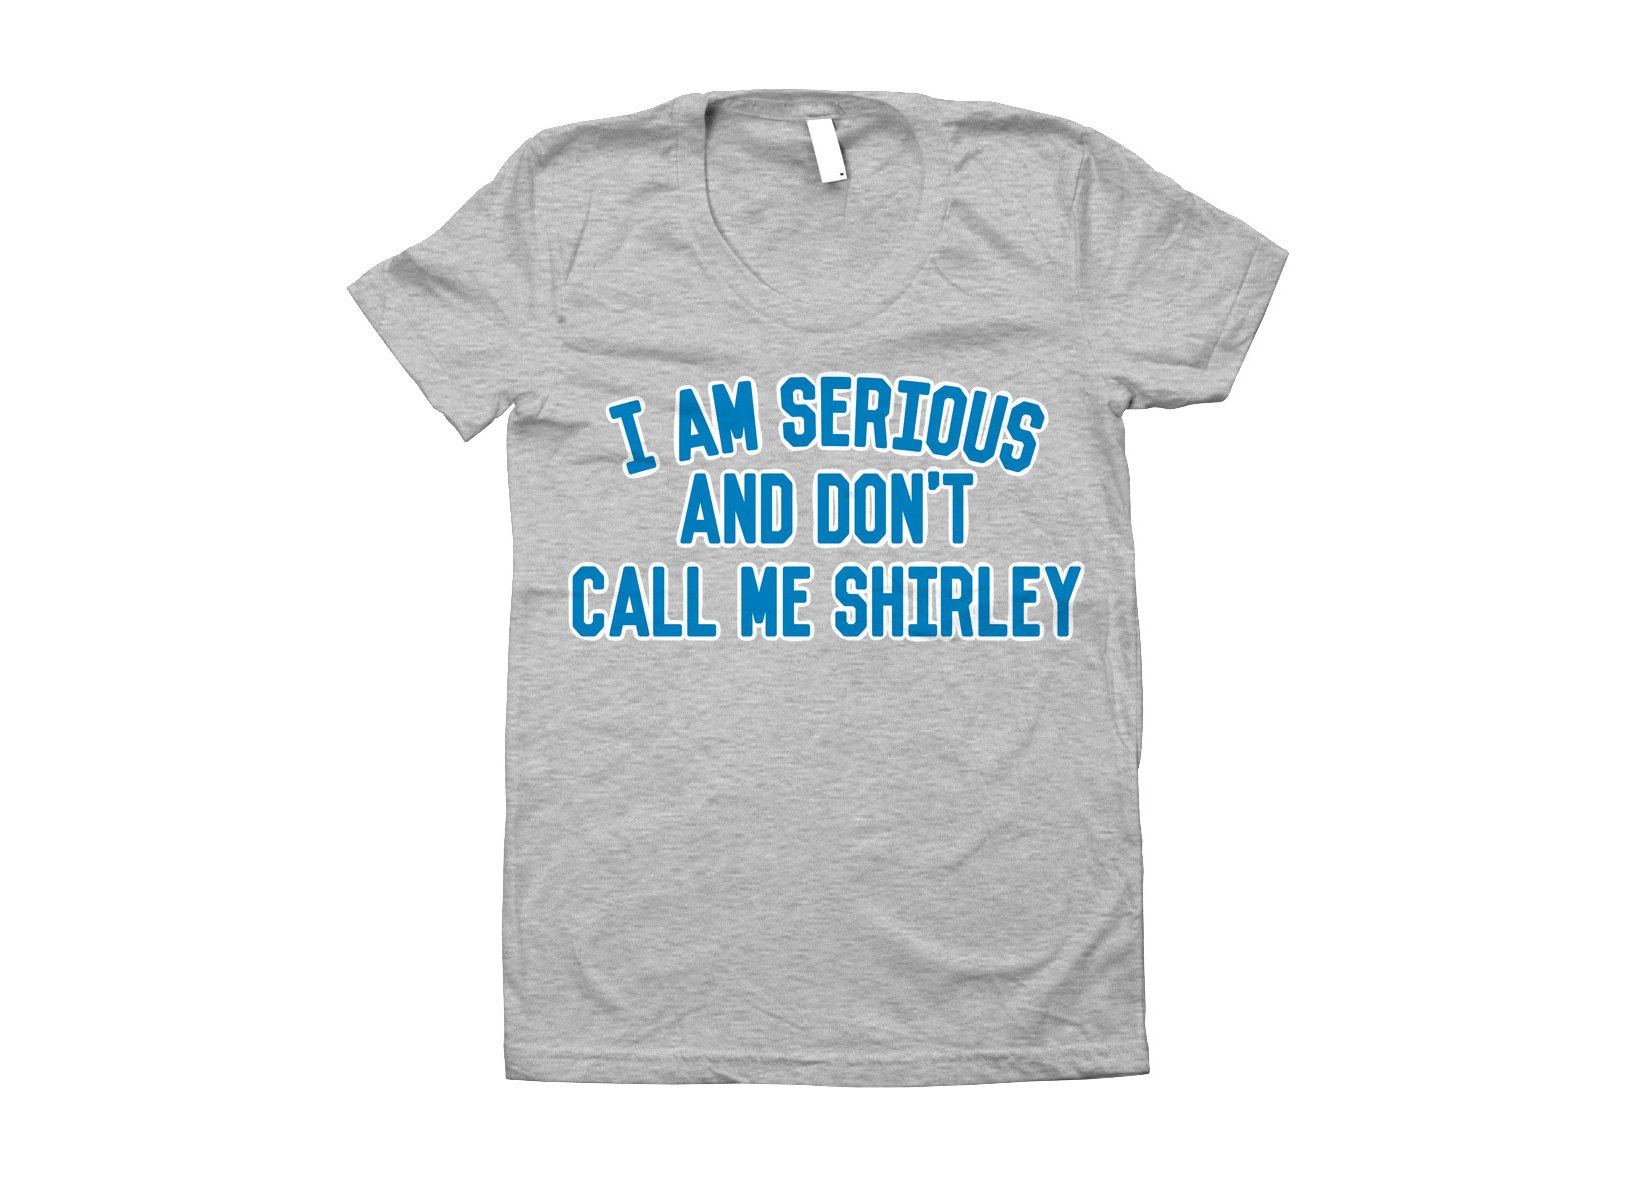 I Am Serious, And Don't Call Me Shirley on Juniors T-Shirt